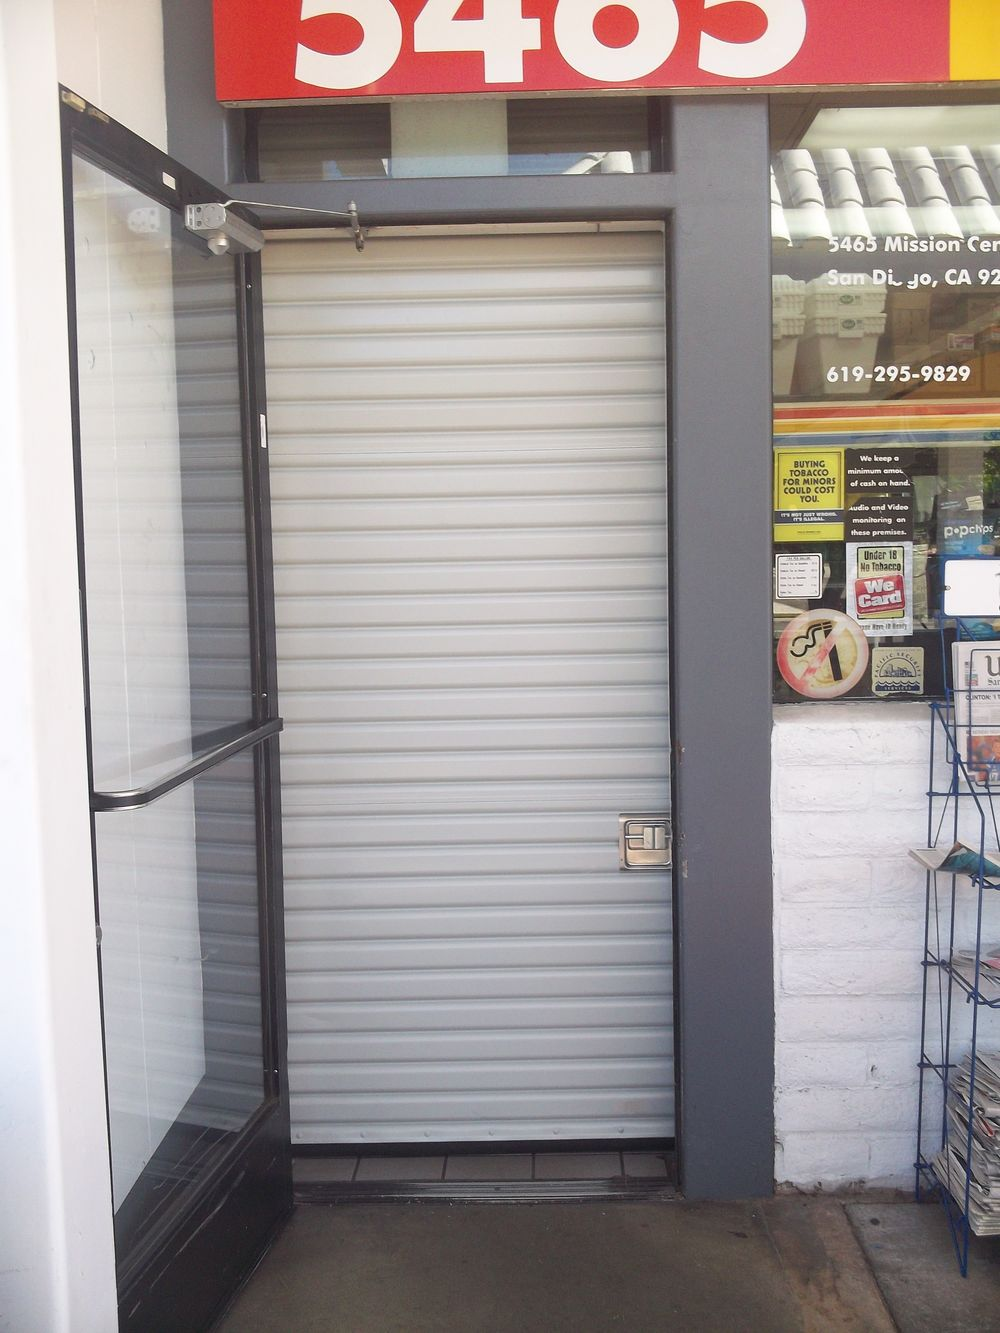 Small interior roll up doors are very convenient and save much space small interior roll up doors are very convenient and save much space planetlyrics Gallery